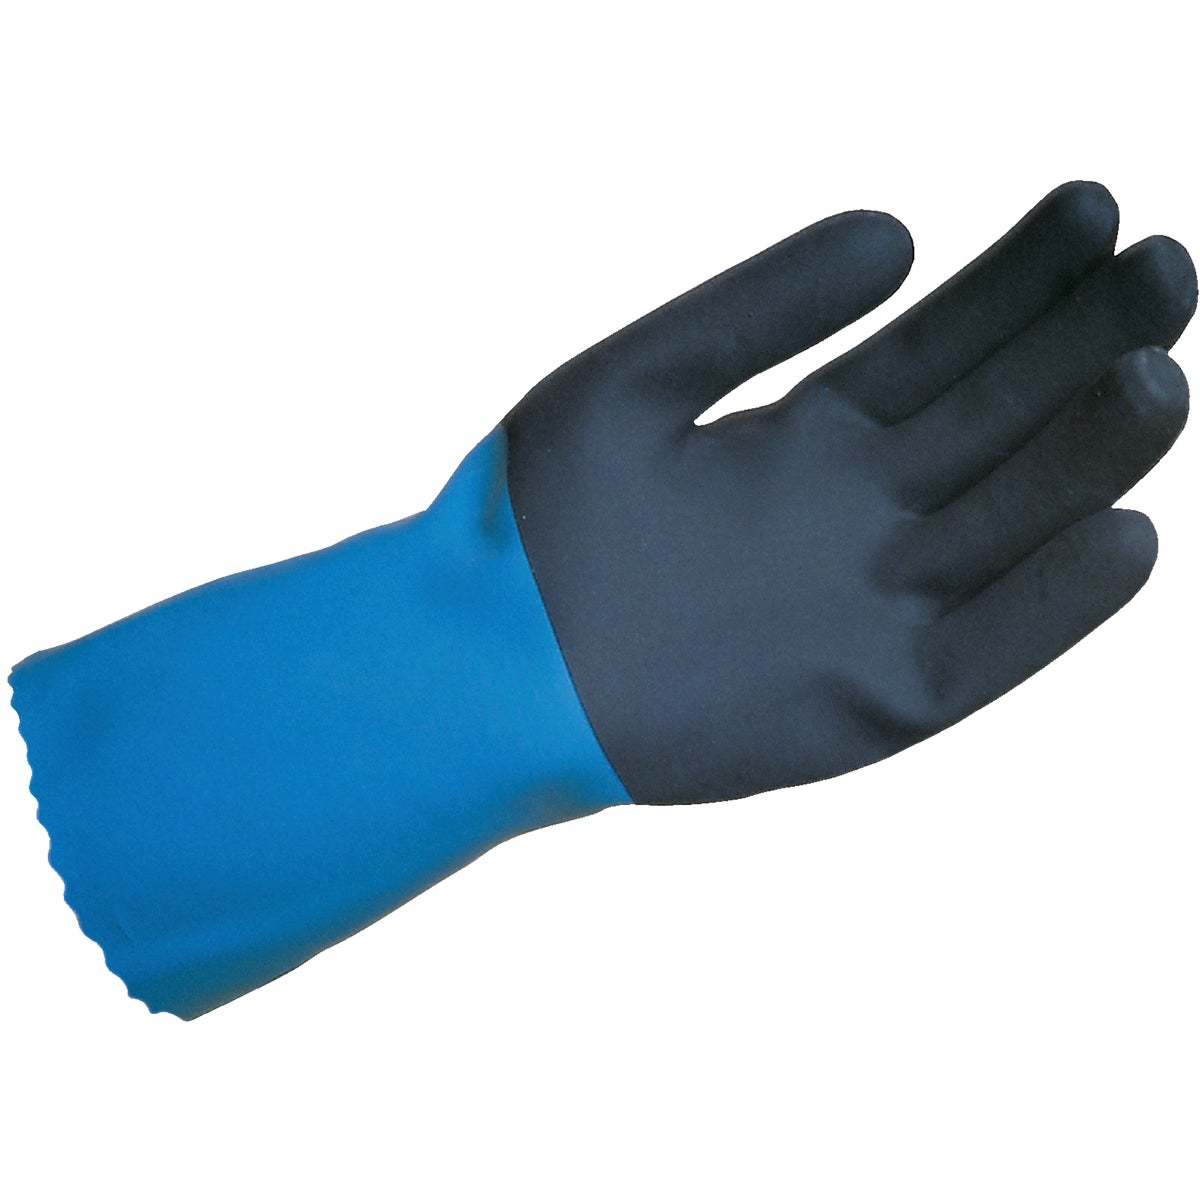 LARGE RUBBER GLOVES - 33003 by Lehigh Spontex